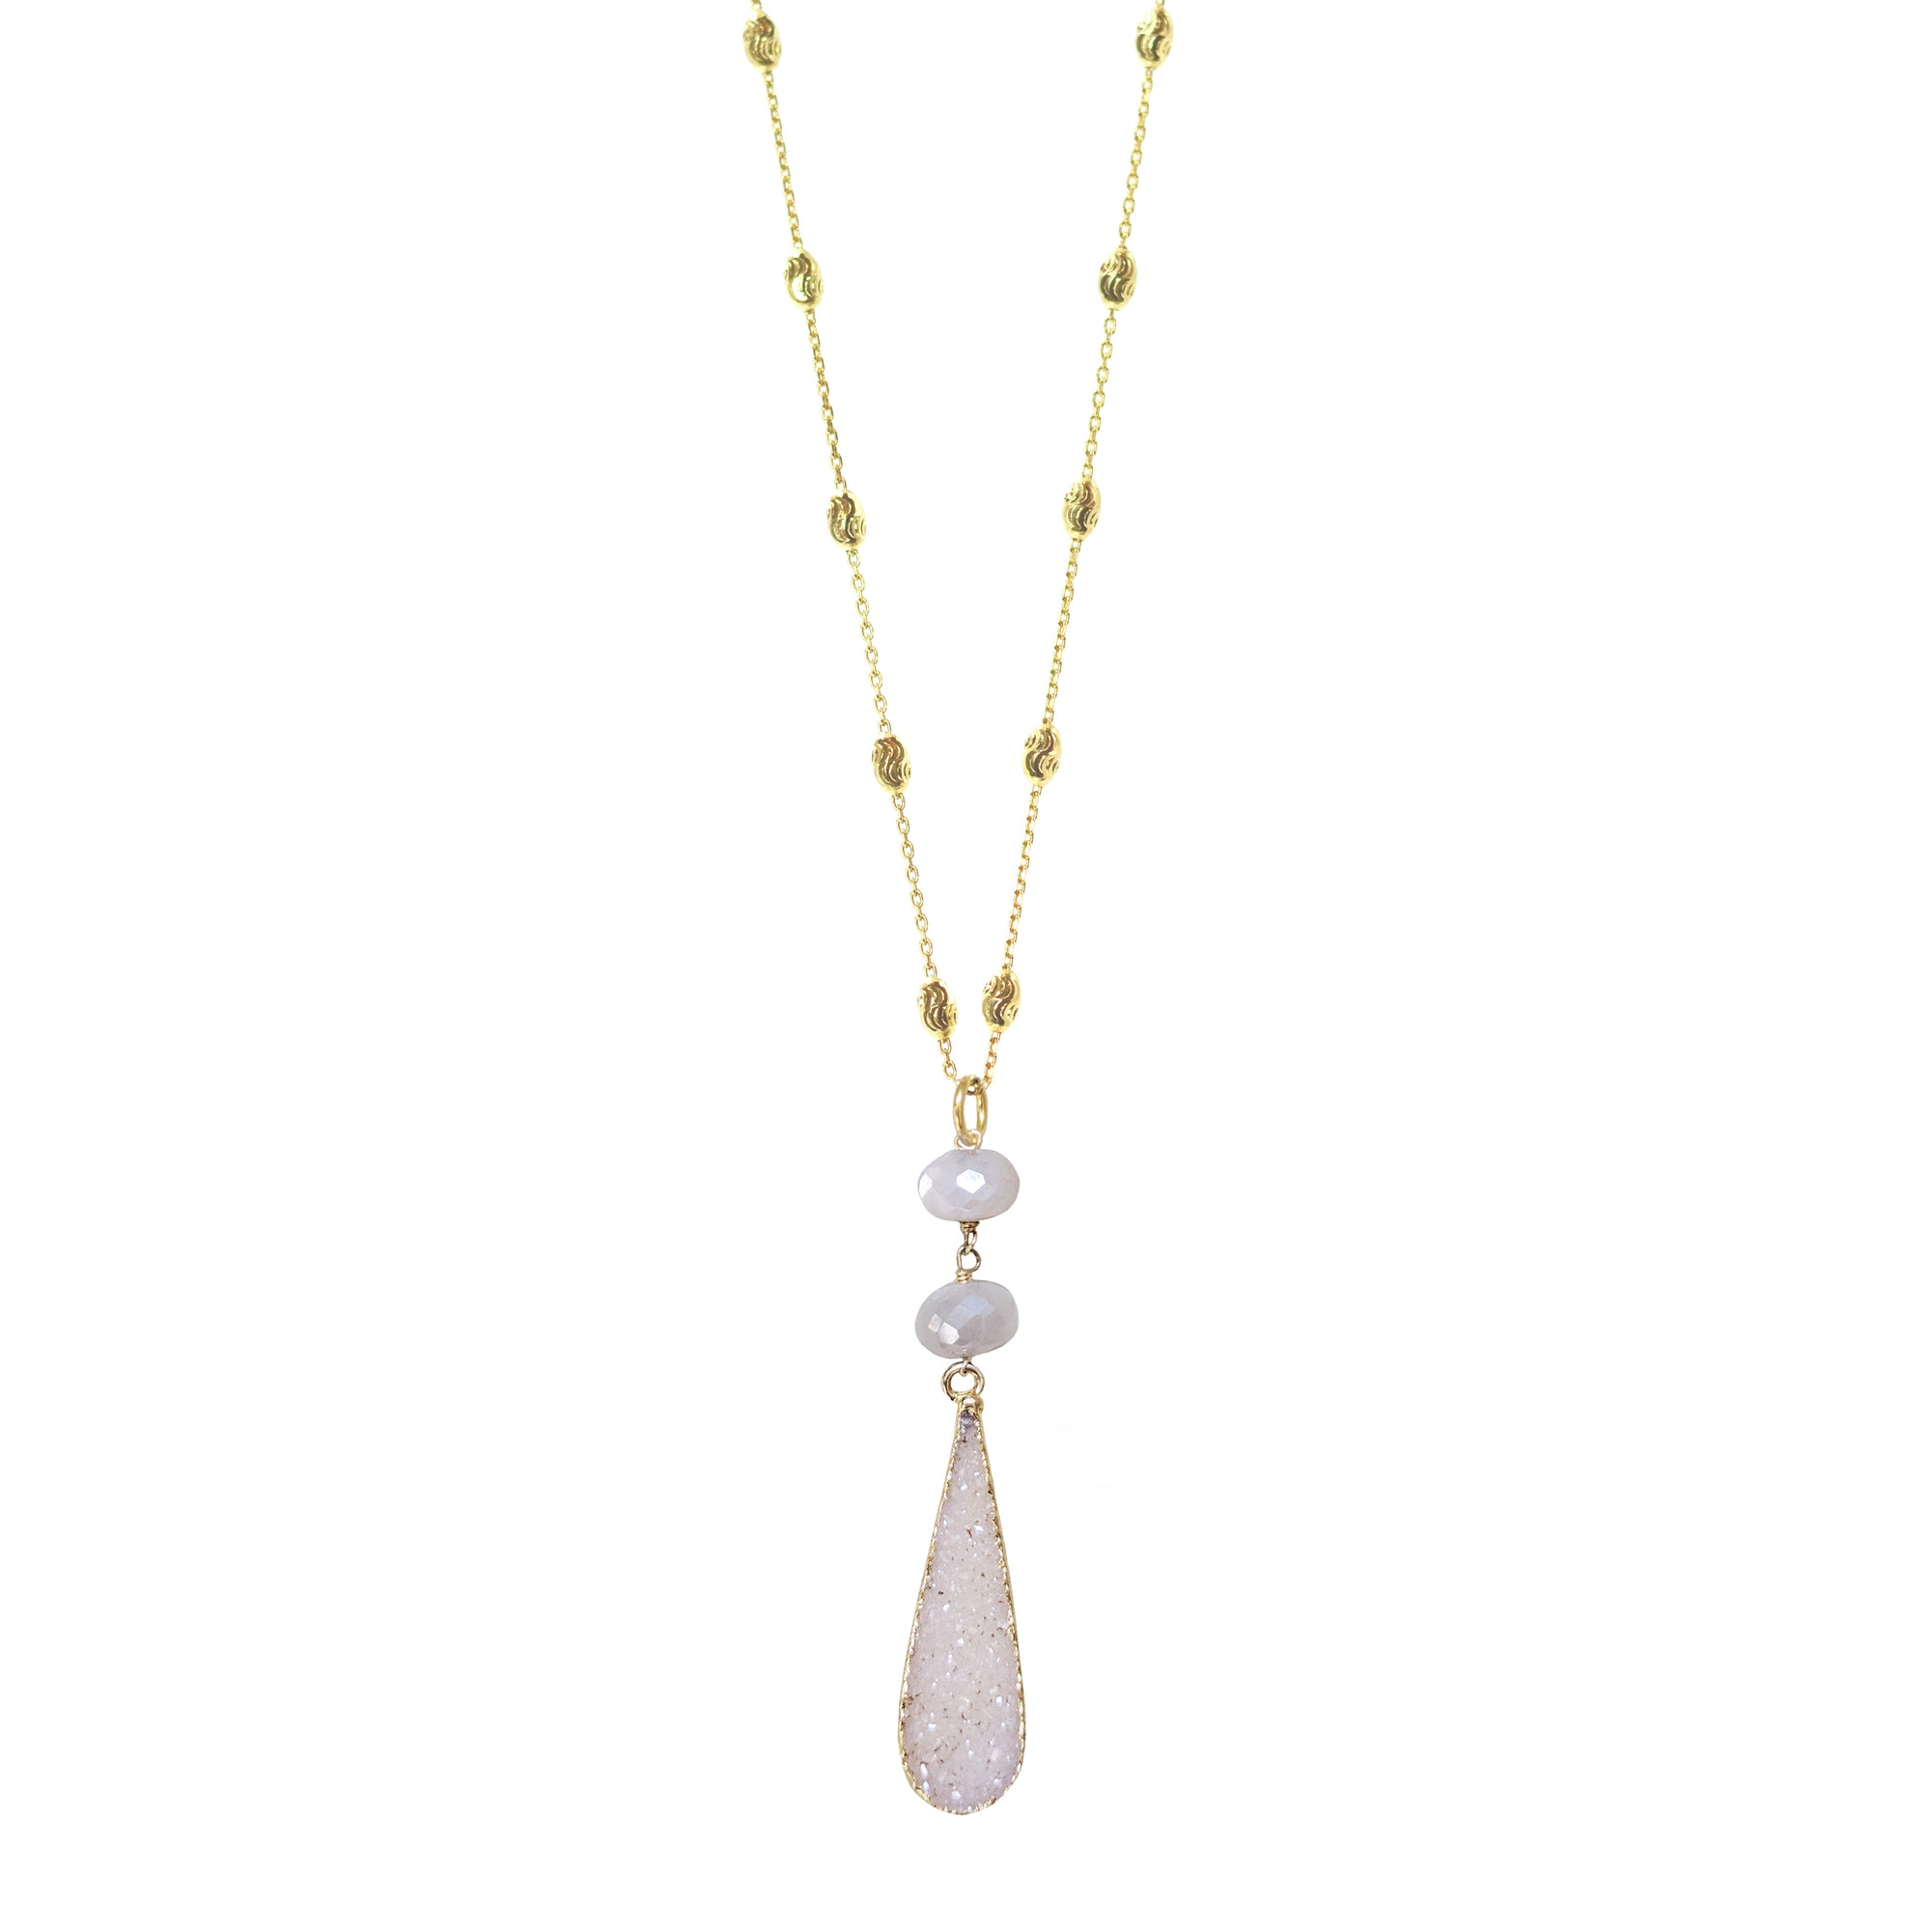 Teardrop Druzy on Chain